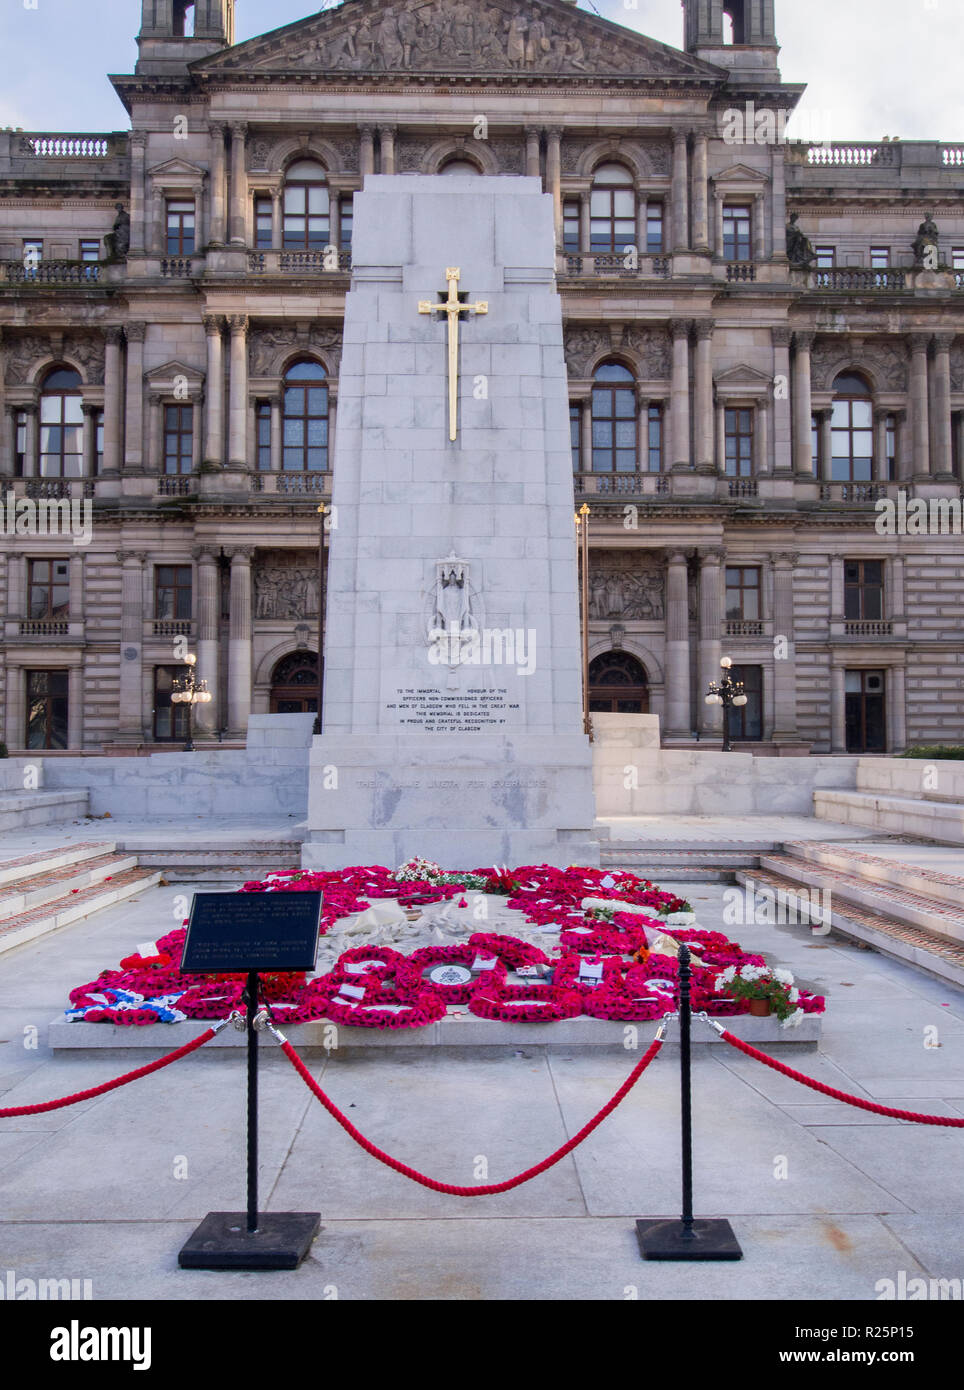 GLASGOW, SCOTLAND - NOVEMBER 2nd 2018: Flowers and poppies at the Glasgow Cenotaph. Stock Photo